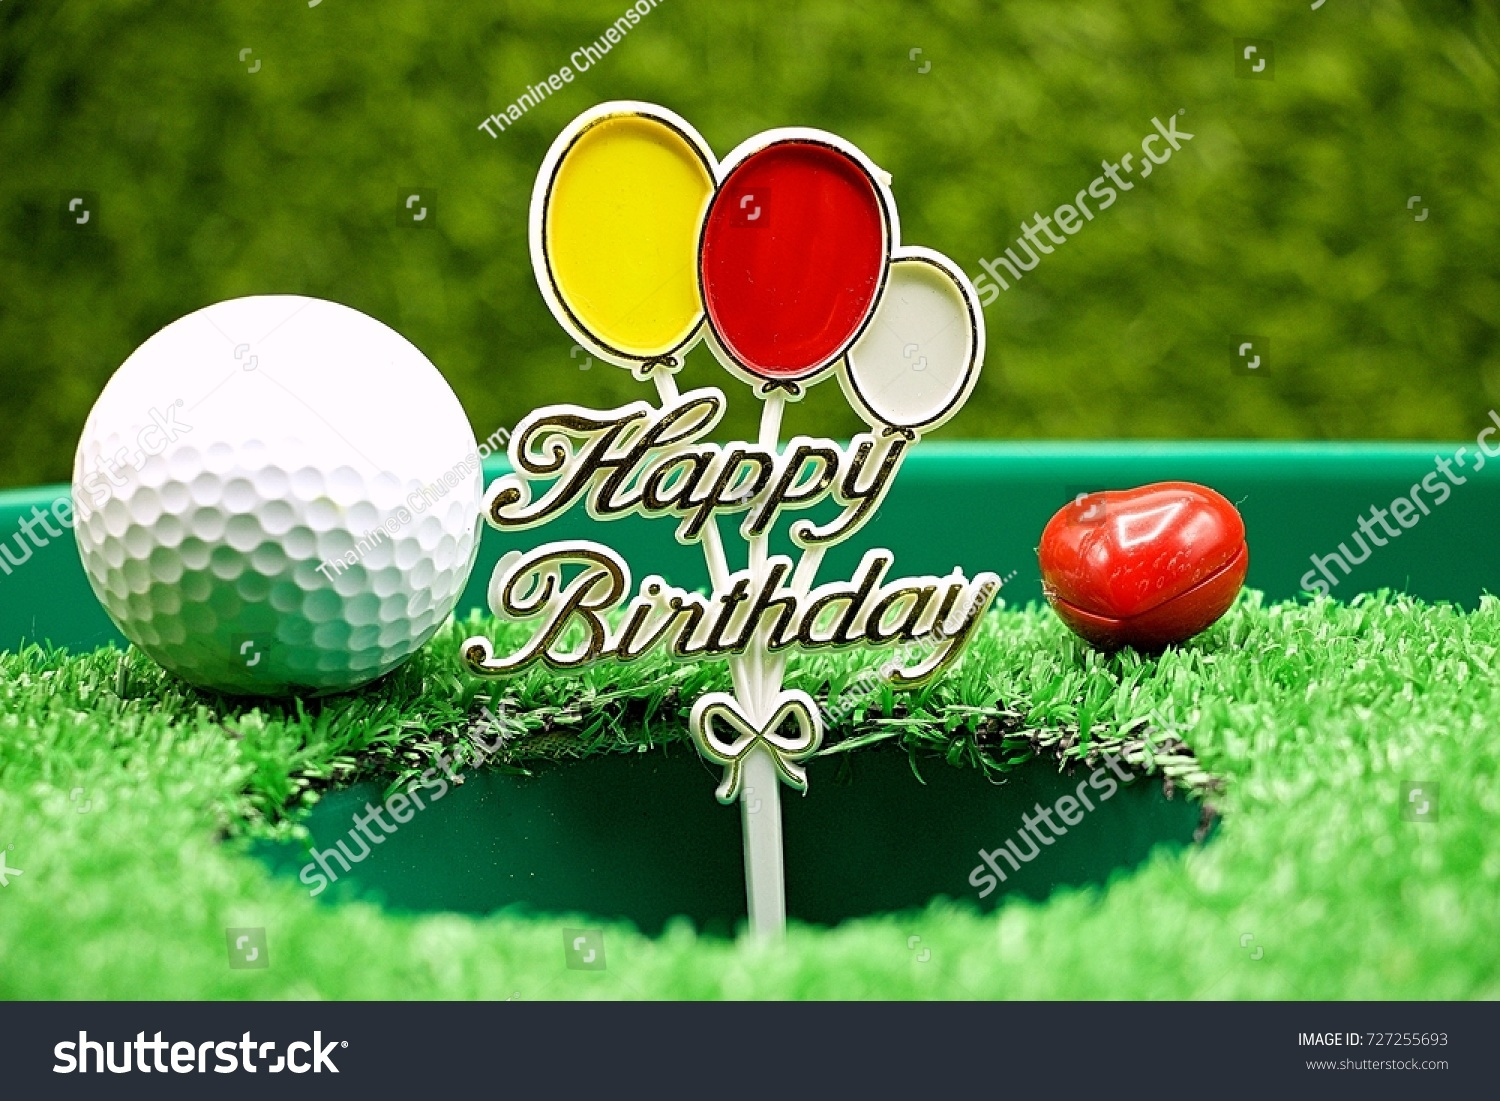 happy birthday golf images ; stock-photo-happy-birthday-to-golfer-with-golf-ball-and-sign-on-green-grass-727255693